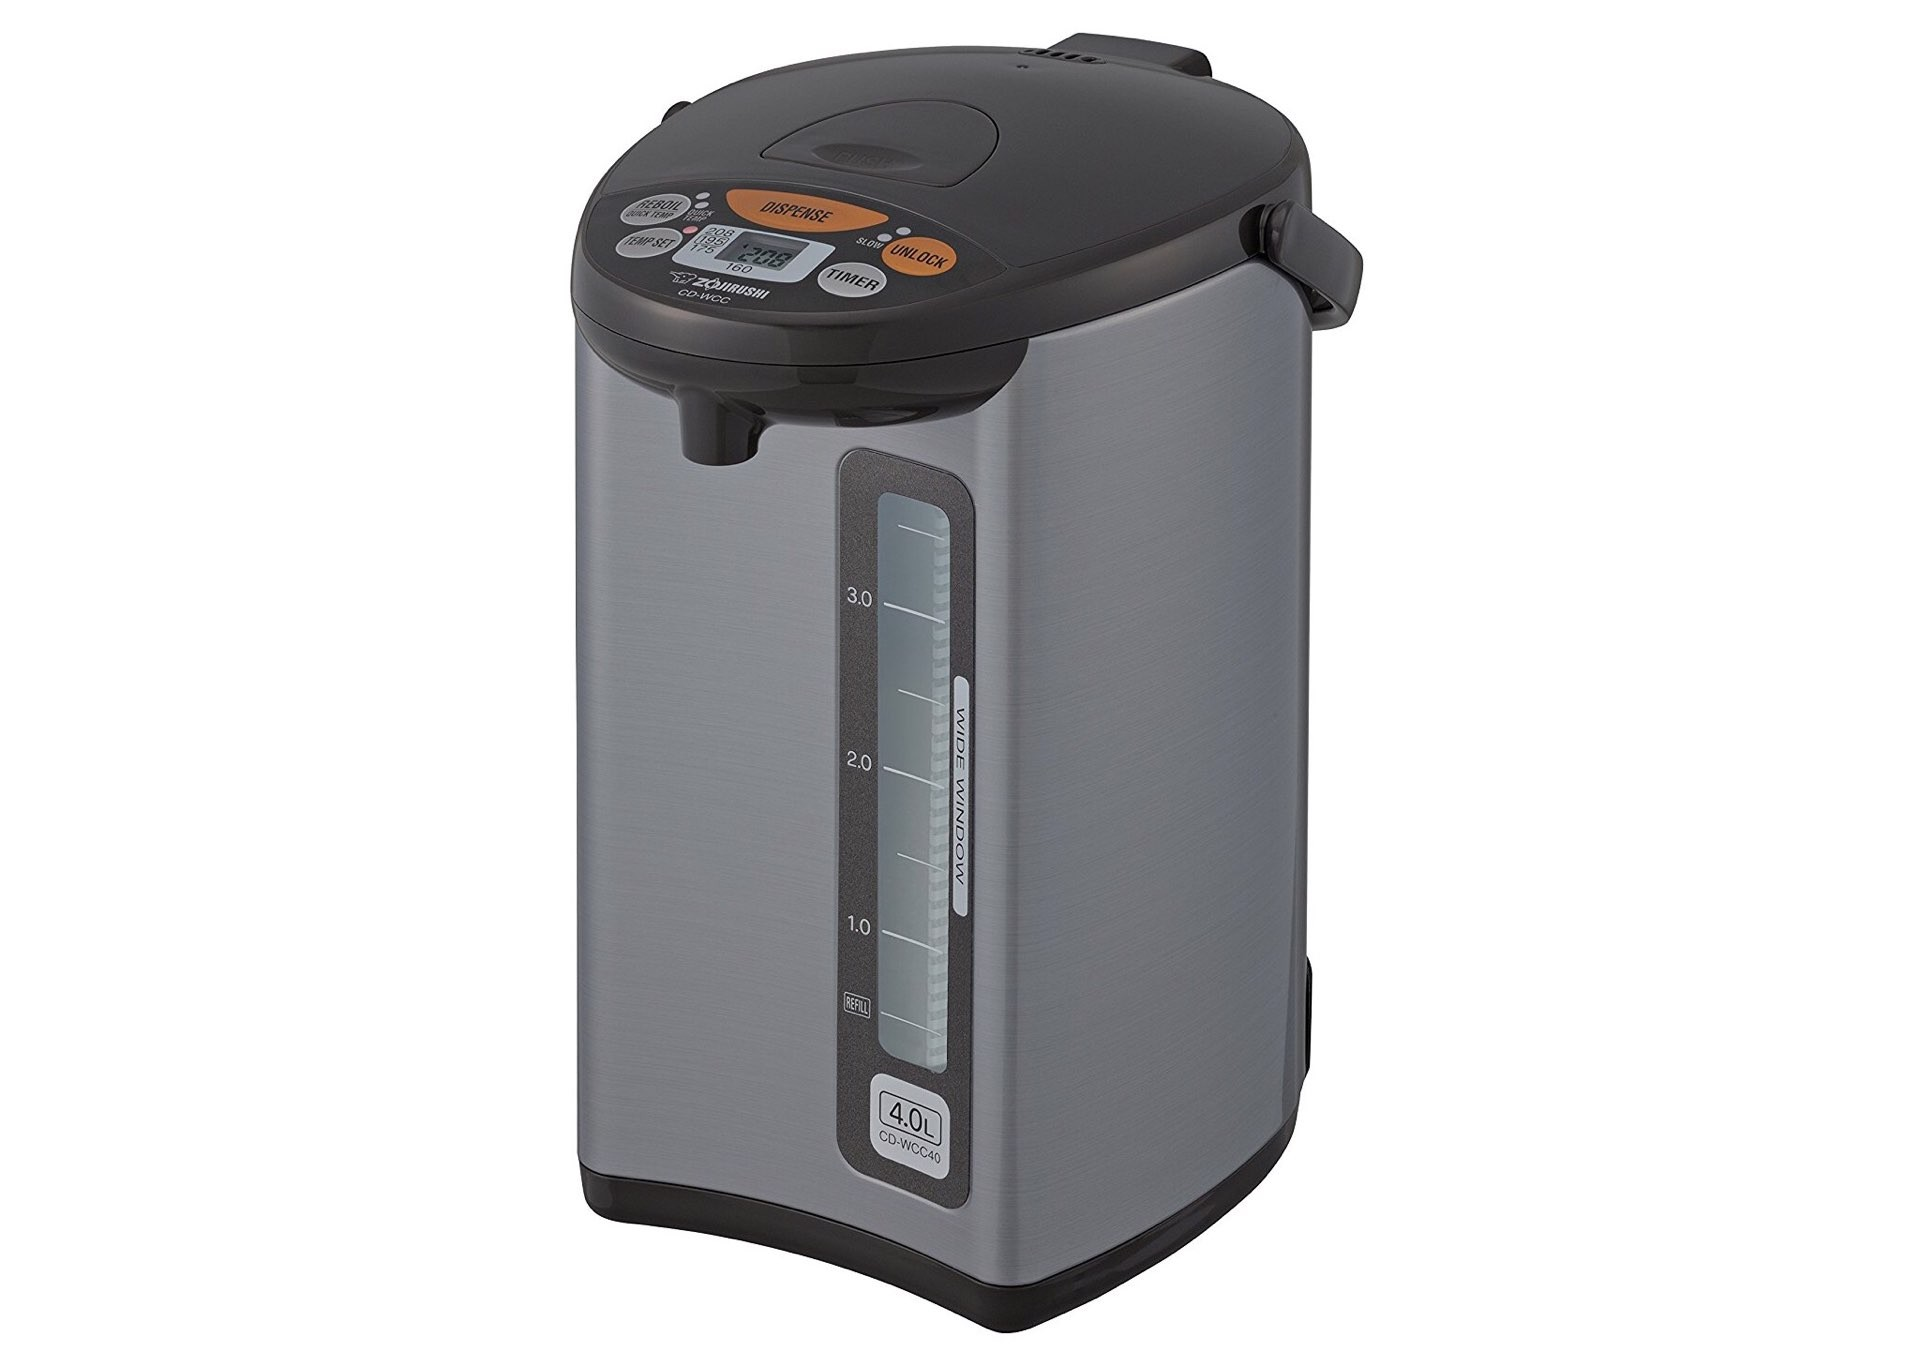 Zojirushi water boiler and warmer. ($110)